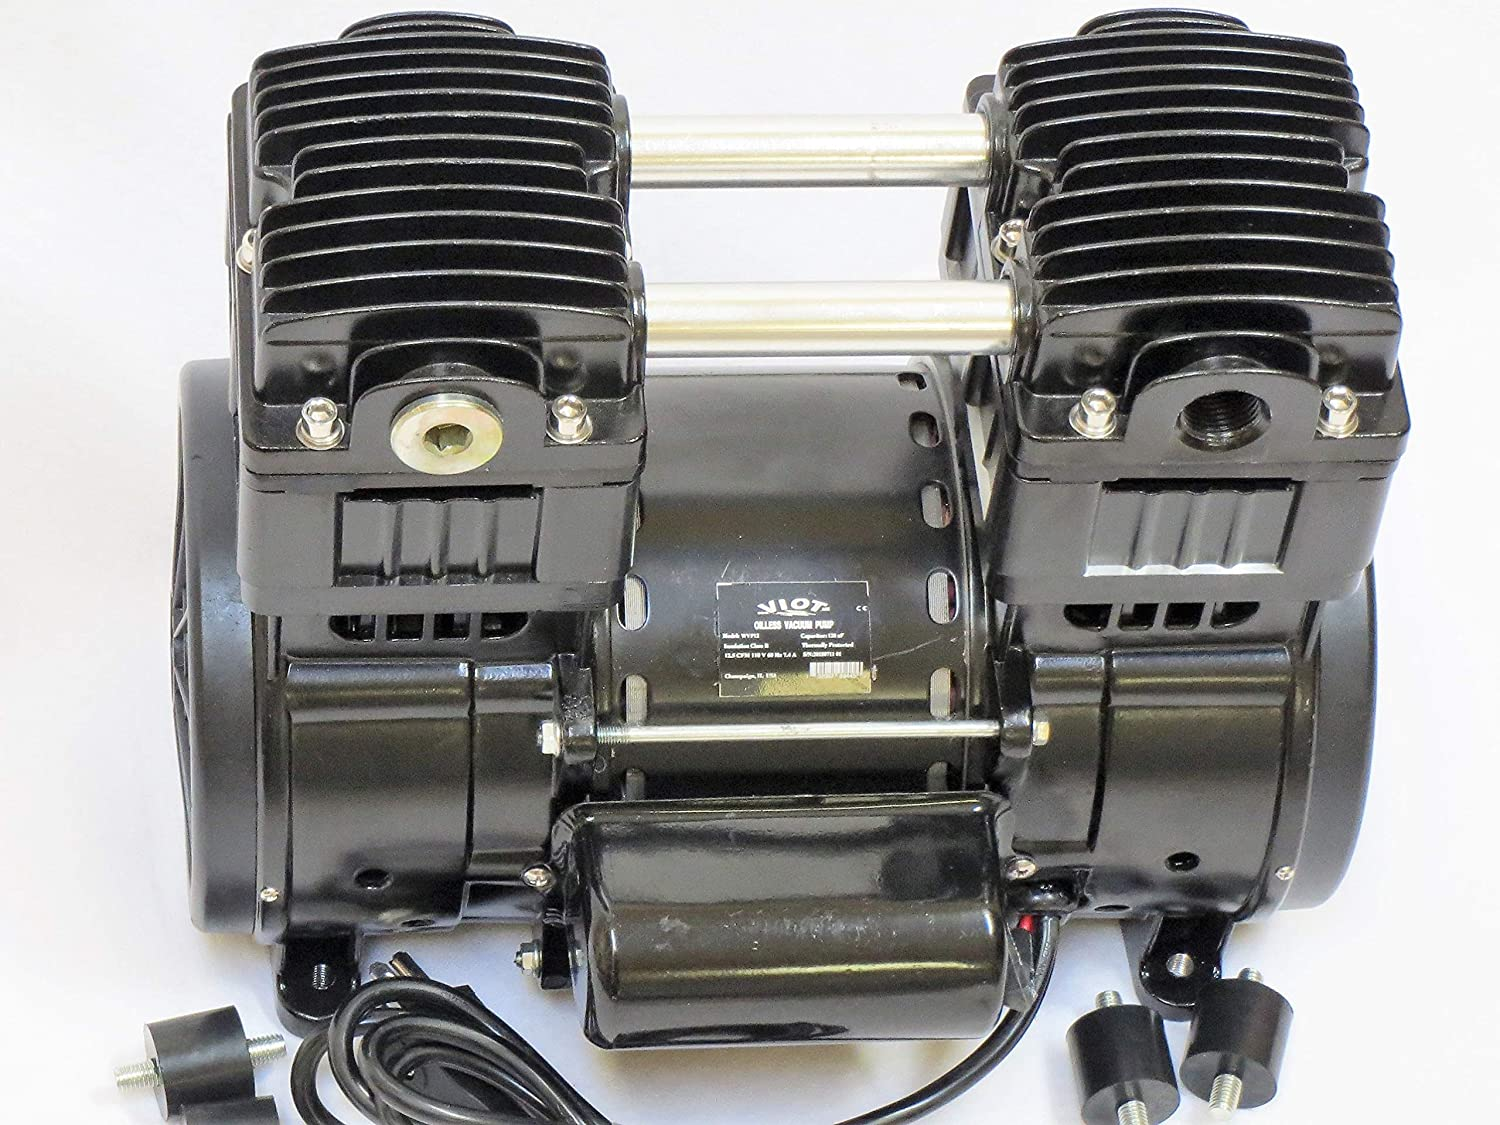 Oilless Oil-Free Vacuum Pump/Compressor Push/Pull:Twin Piston 1.2 HP 115 VAC 12CFM for Industrial/Workshop/Medic Science lab setups Applications High Efficiency Industry Size